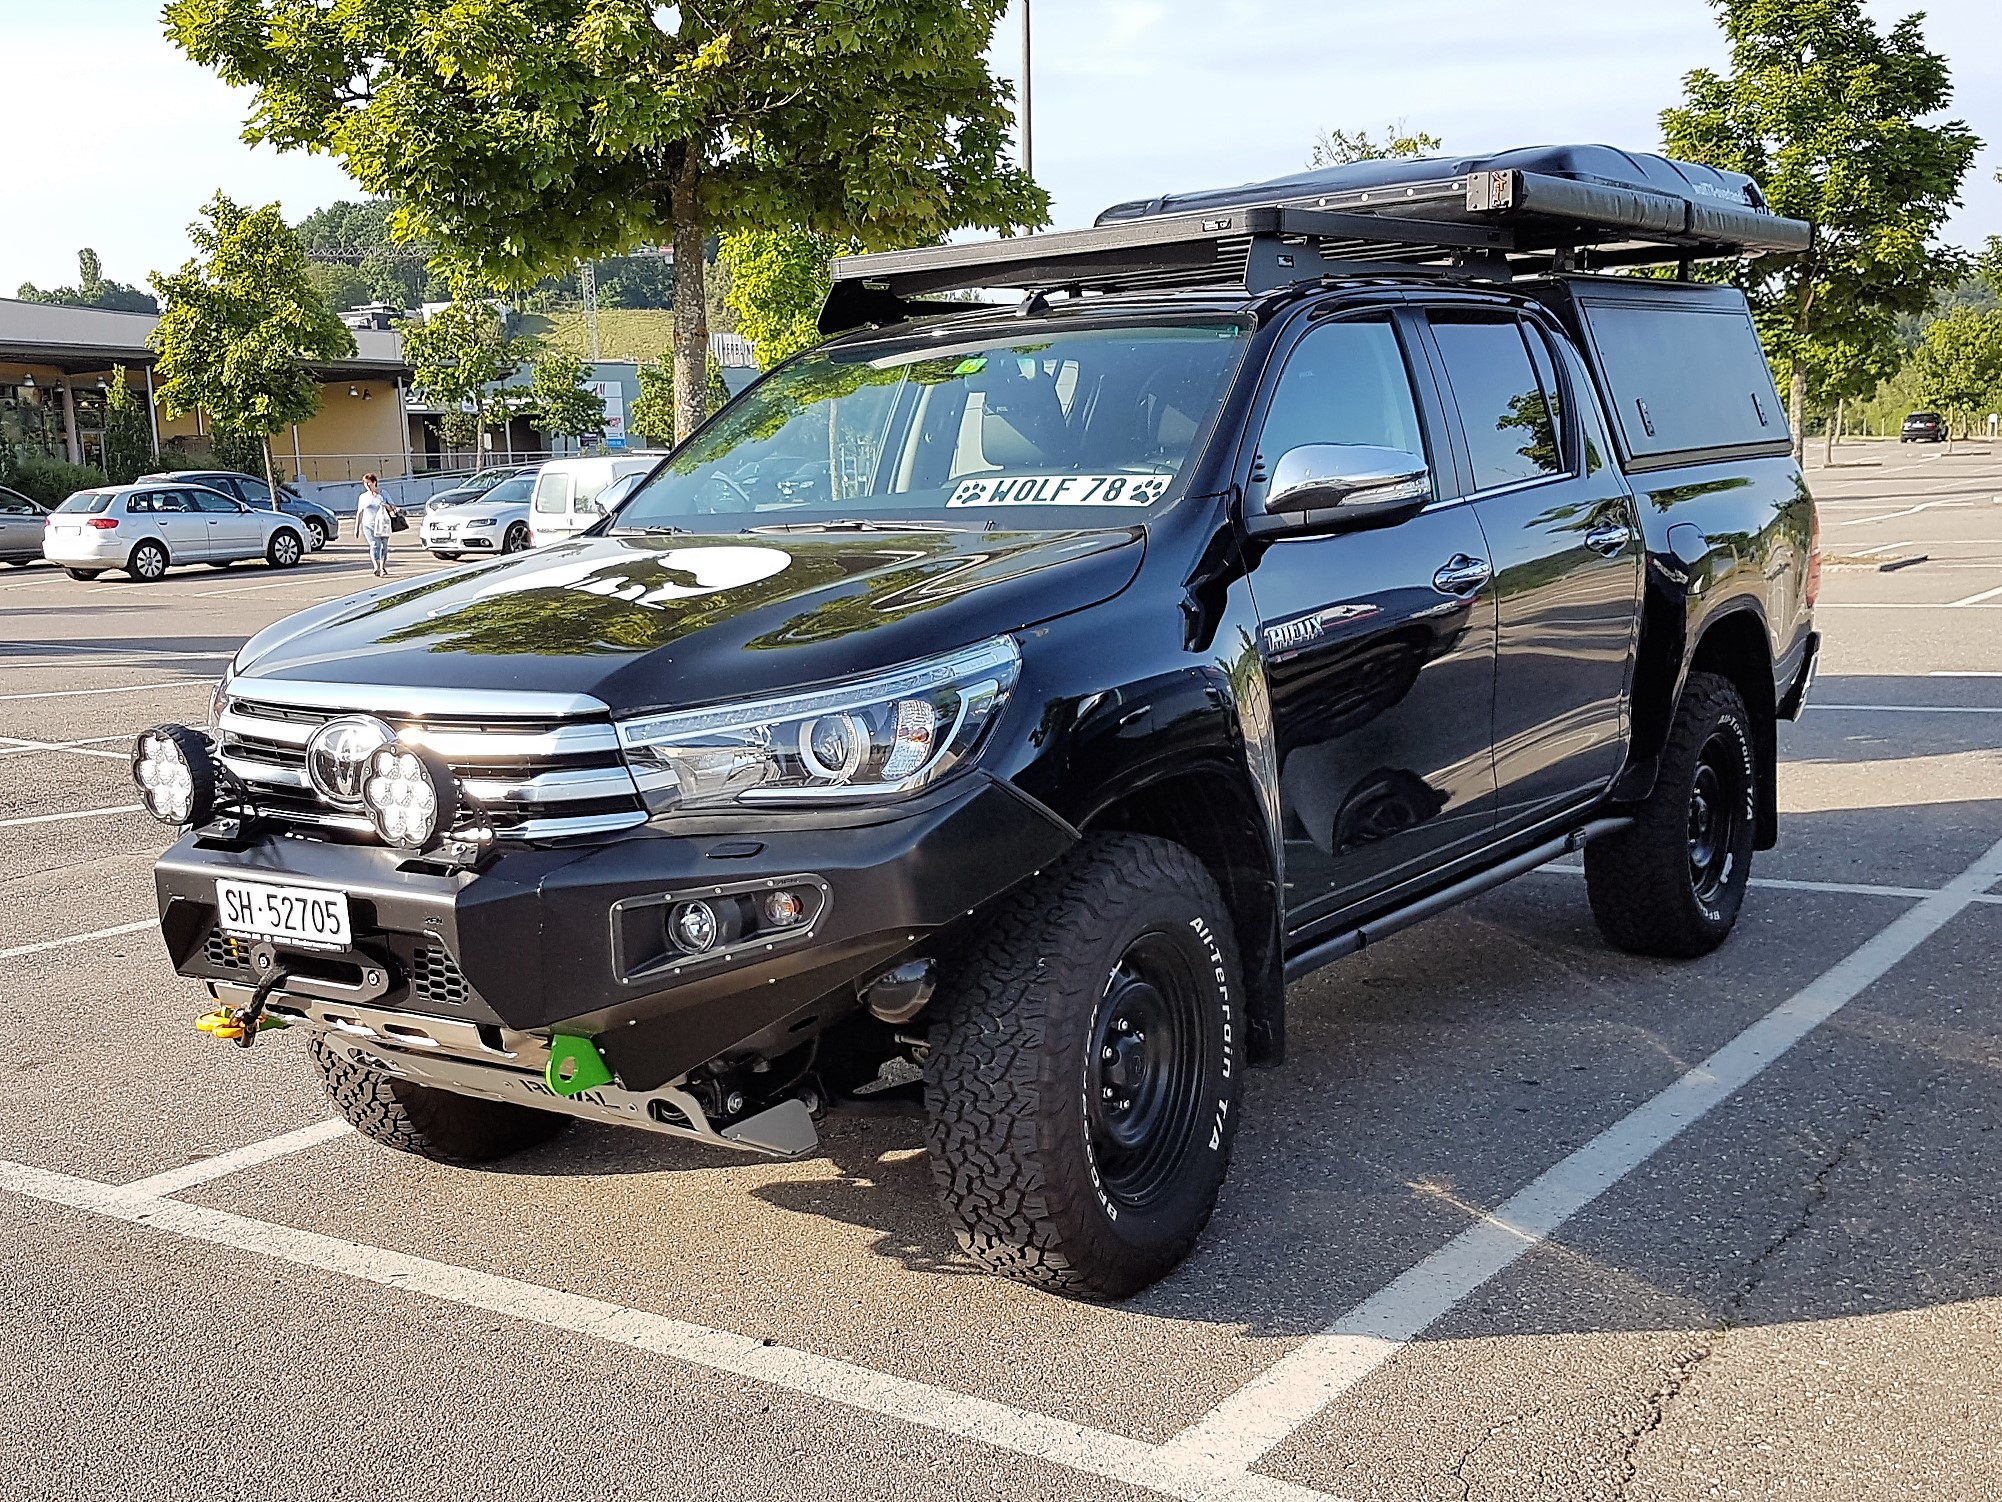 Toyota Hilux Revo AFN Front bumper Steel Stahlstossstange 2017 2.4 Blackwolf Alucab offroad tires overland expedition 4x4 ARB Frontrunner Horntools Winch Rival4x4 James Baroude Discovery Awining Markise bfgoodrich 265/70R17 TJM Sknorkel wolf78-overland.ch